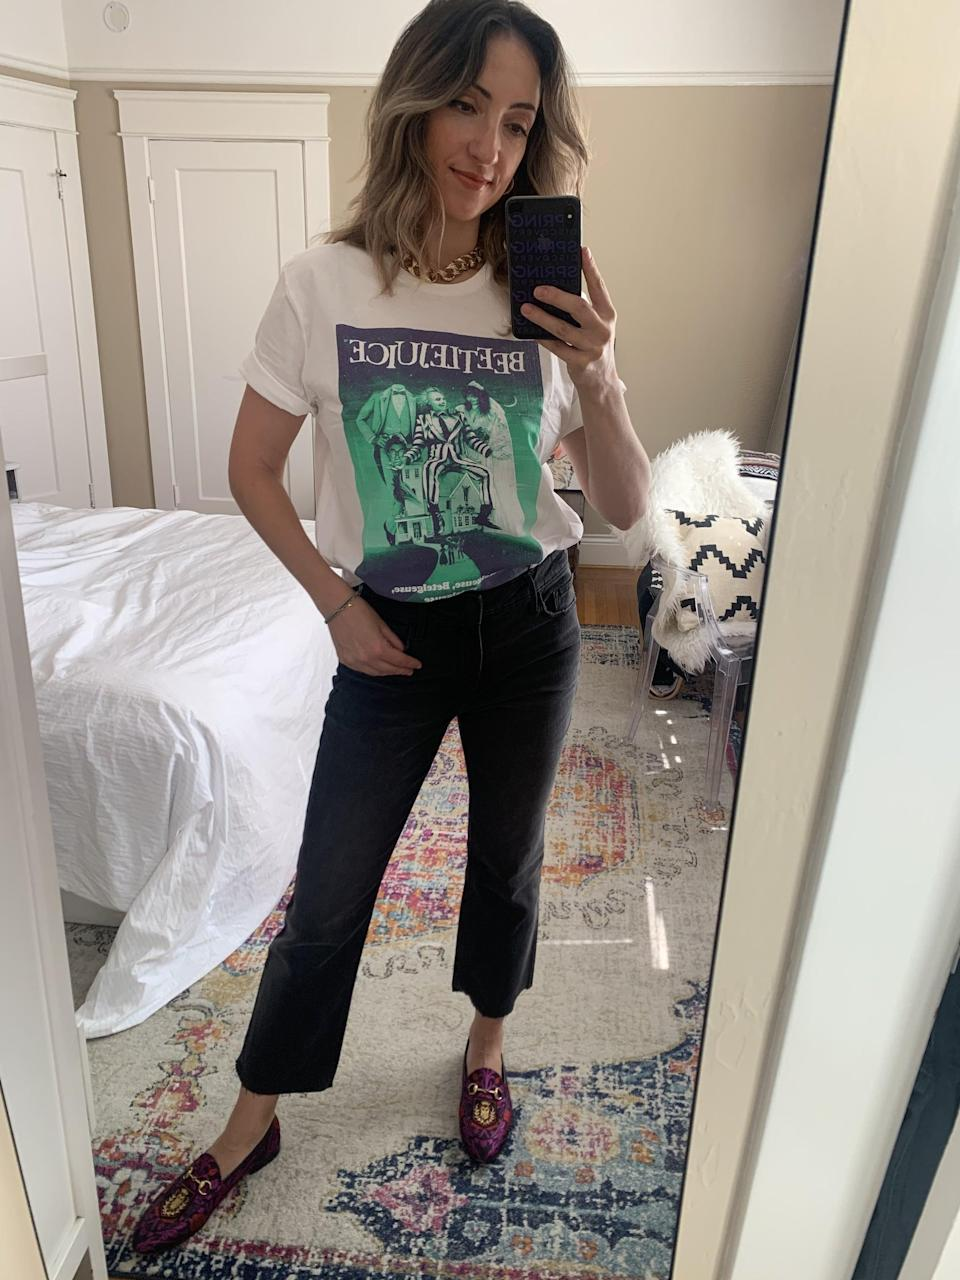 "<p><strong>The item:</strong> <span>Beetlejuice t-shirt</span> ($19)</p> <p><strong>What our editor said</strong>: ""I wanted something comfortable, loose-fitting, and maybe a little moody, too. It didn't take long for me to find it at Old Navy. The Beetlejuice tee had everything I was looking for."" - RB If you want to read more, here is the <a href=""https://www.popsugar.com/fashion/beetlejuice-t-shirt-for-women-47817822"" class=""link rapid-noclick-resp"" rel=""nofollow noopener"" target=""_blank"" data-ylk=""slk:complete review"">complete review</a>.</p>"